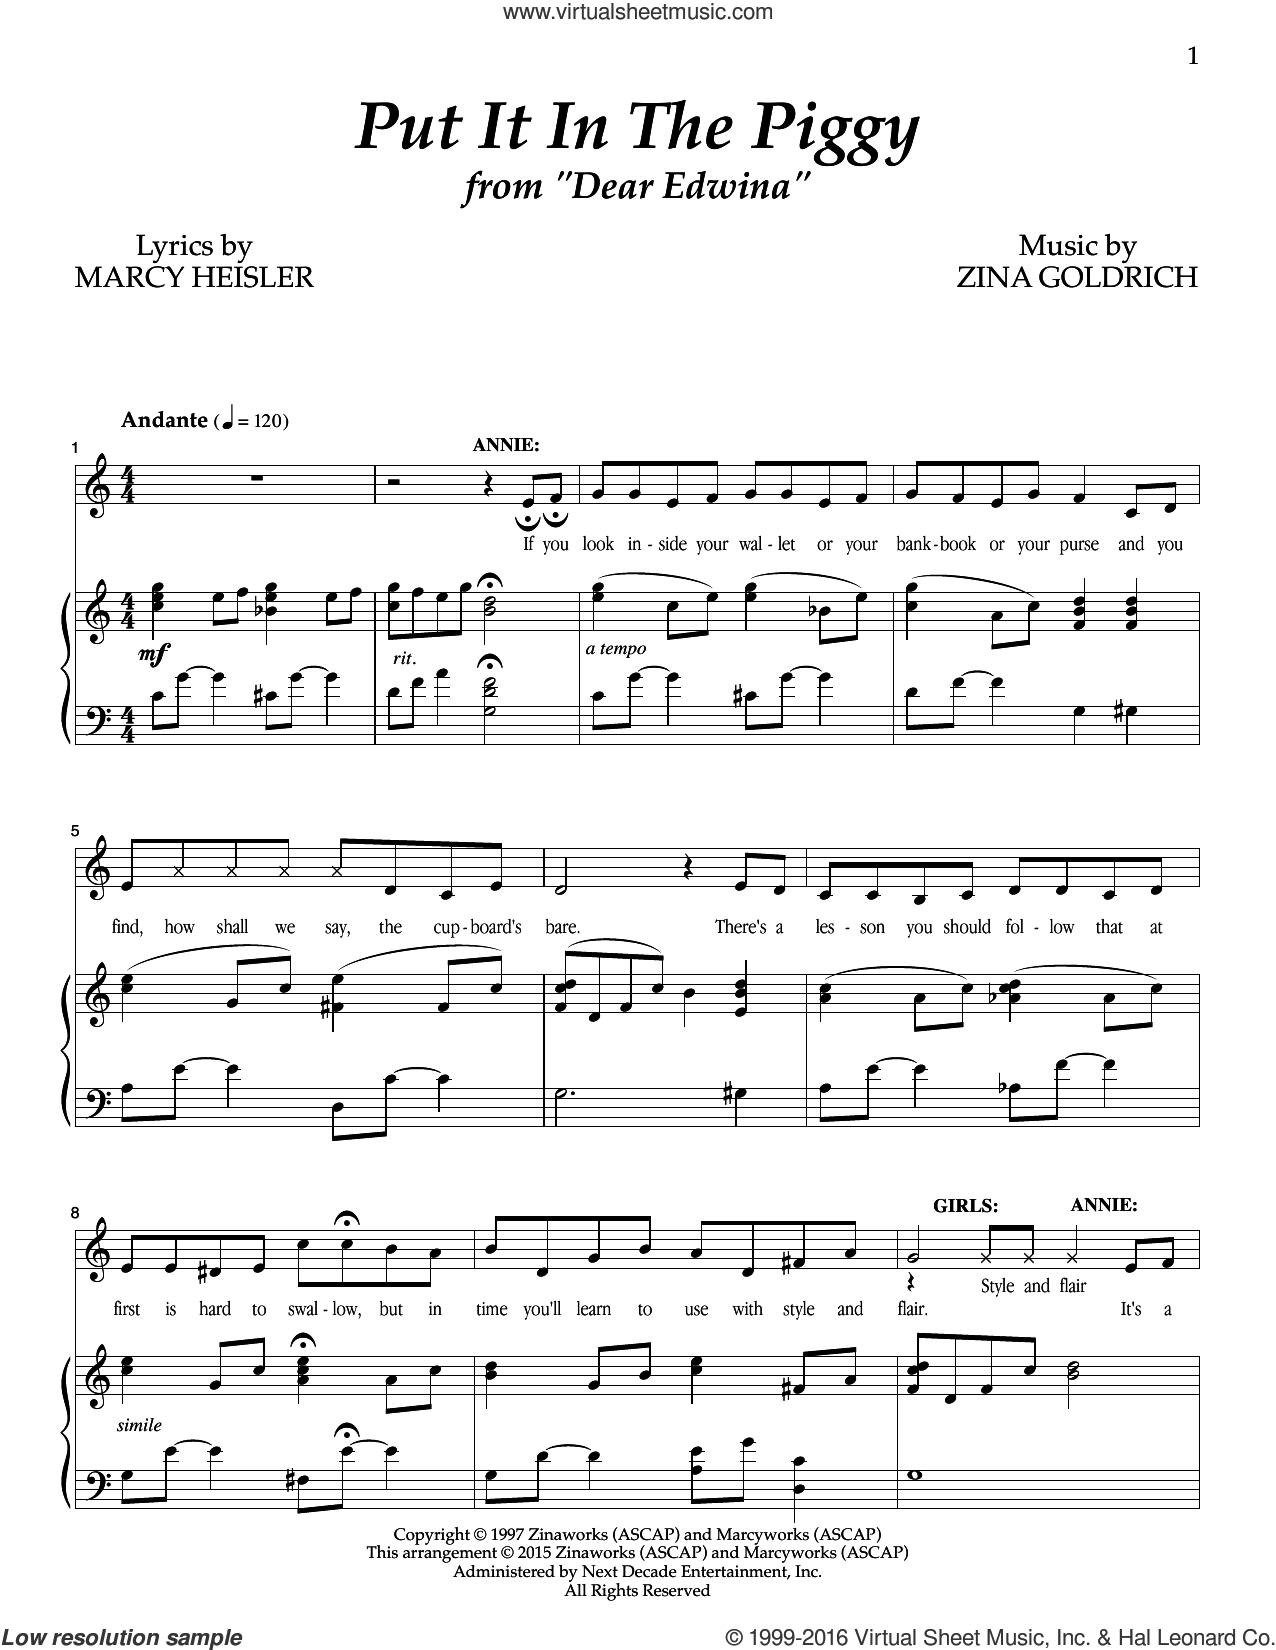 Put It In The Piggy sheet music for voice and piano by Marcy Heisler, Goldrich & Heisler and Zina Goldrich. Score Image Preview.